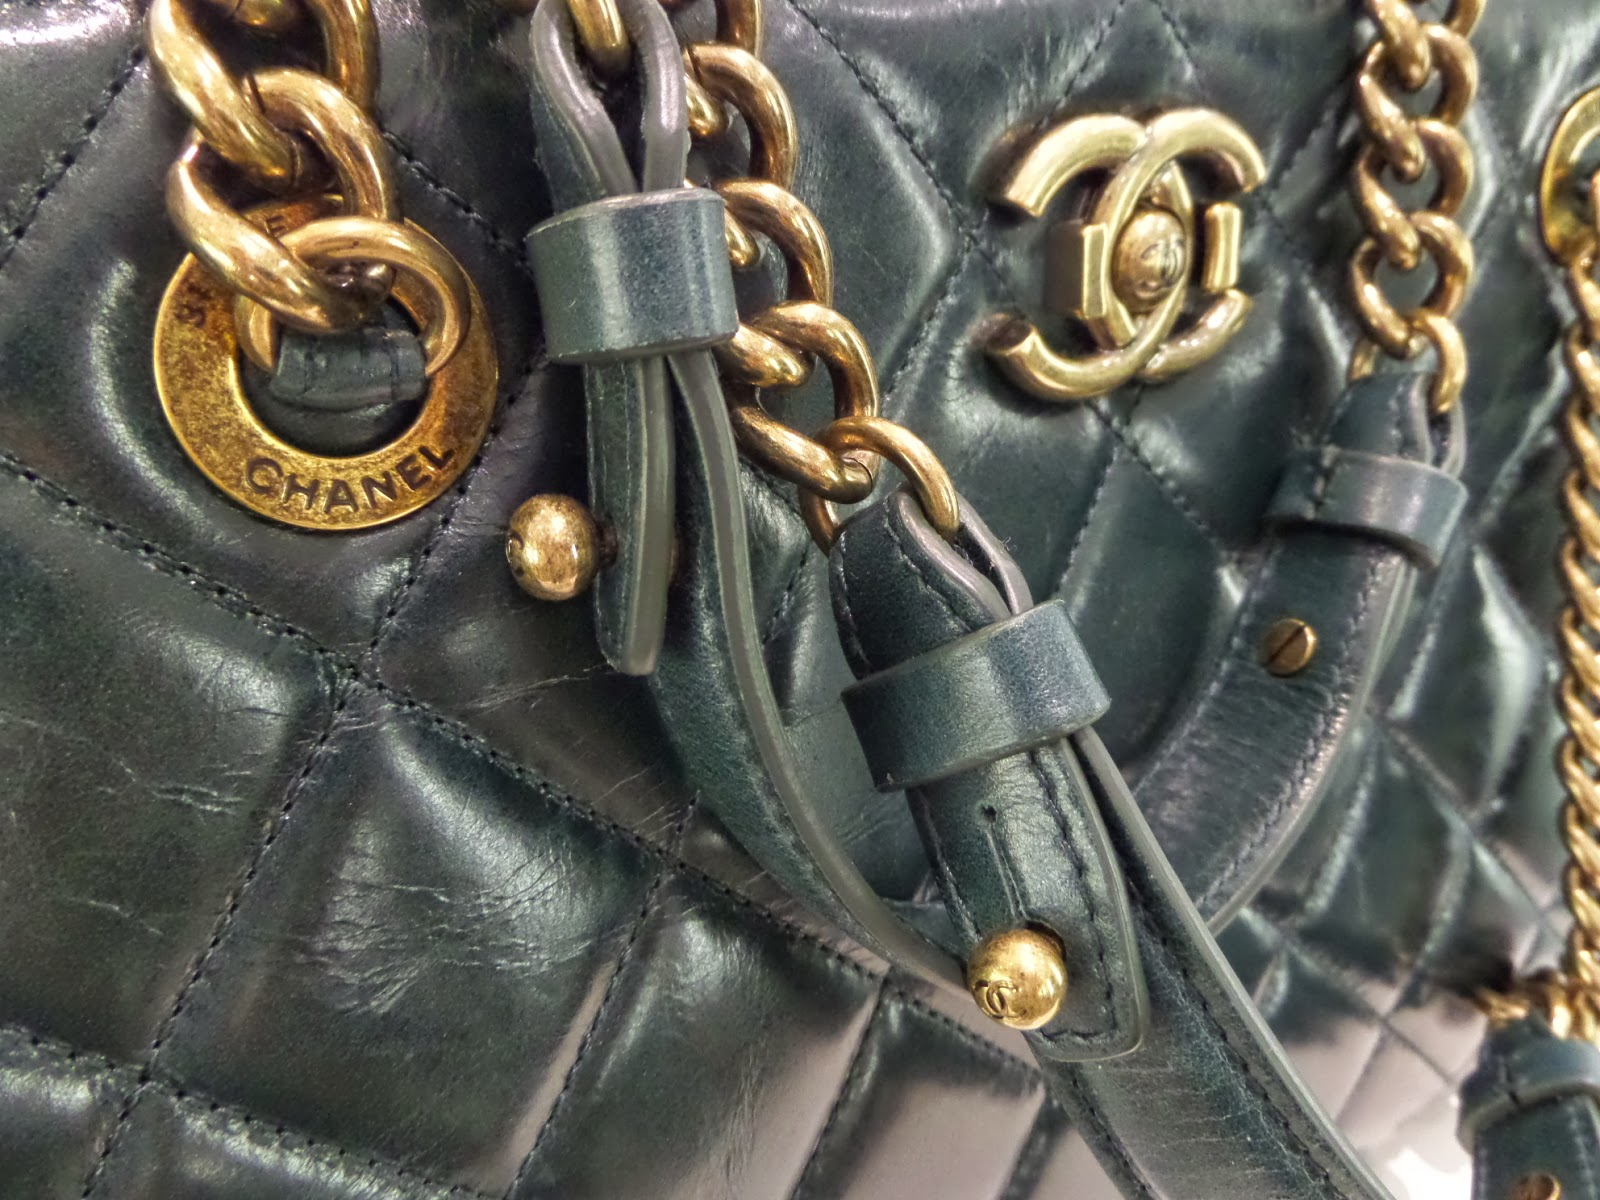 b3cb4f89dee6e3 Once Again Resale is set apart from other consignment shops in Vancouver  because we specialize in the consignment of high-end handbags, shoes,  jewelry, ...